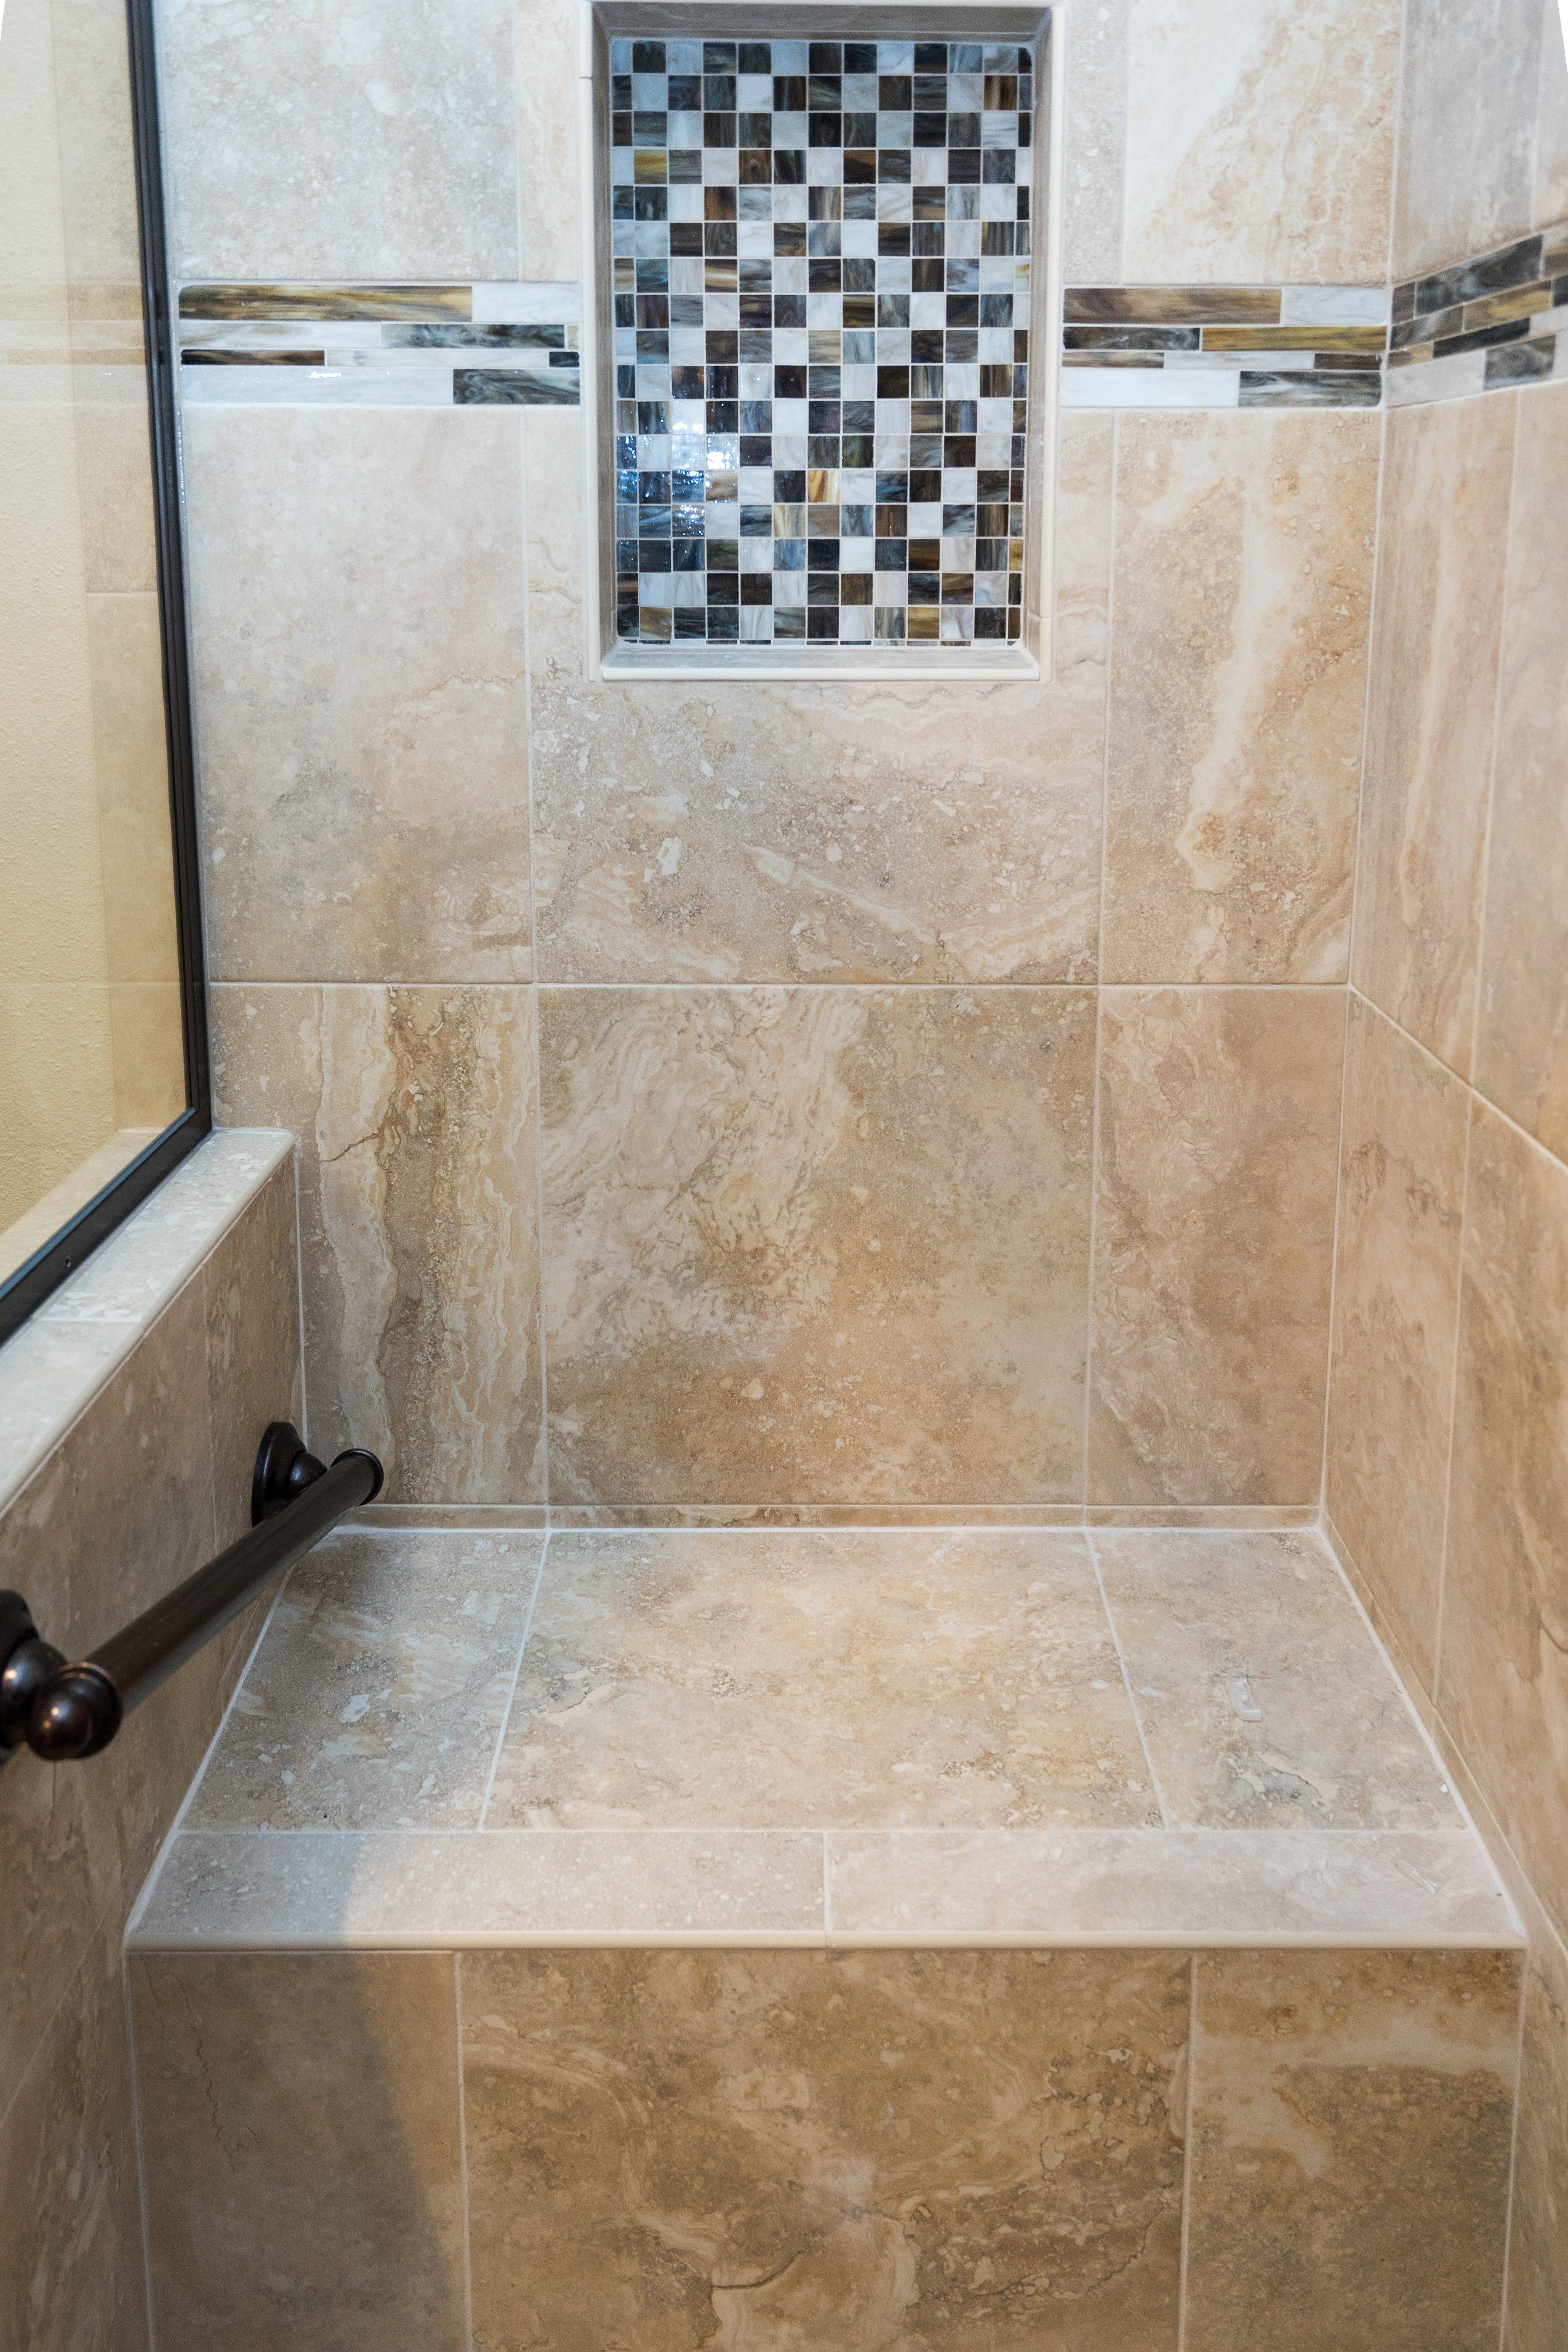 This bathroom remodel is a breath of fresh air With a modern vanity with an integrated sink and a unique shaped shower and travertine floors